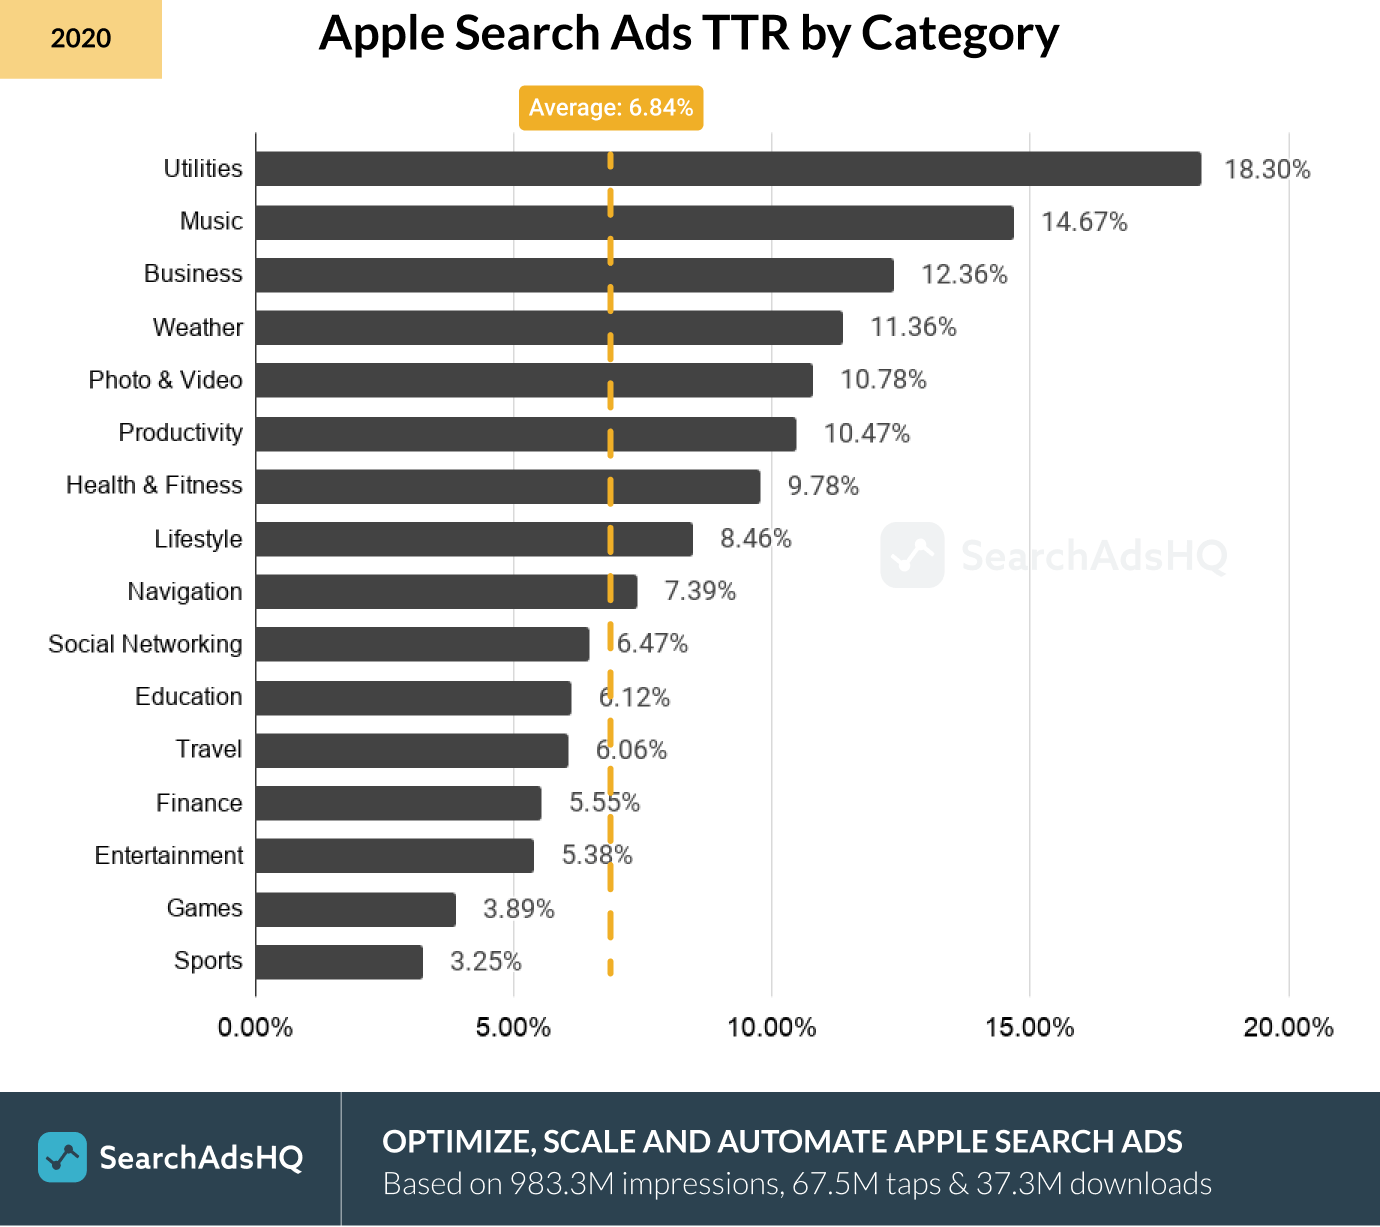 Apple Search Ads TTR by Category_2020